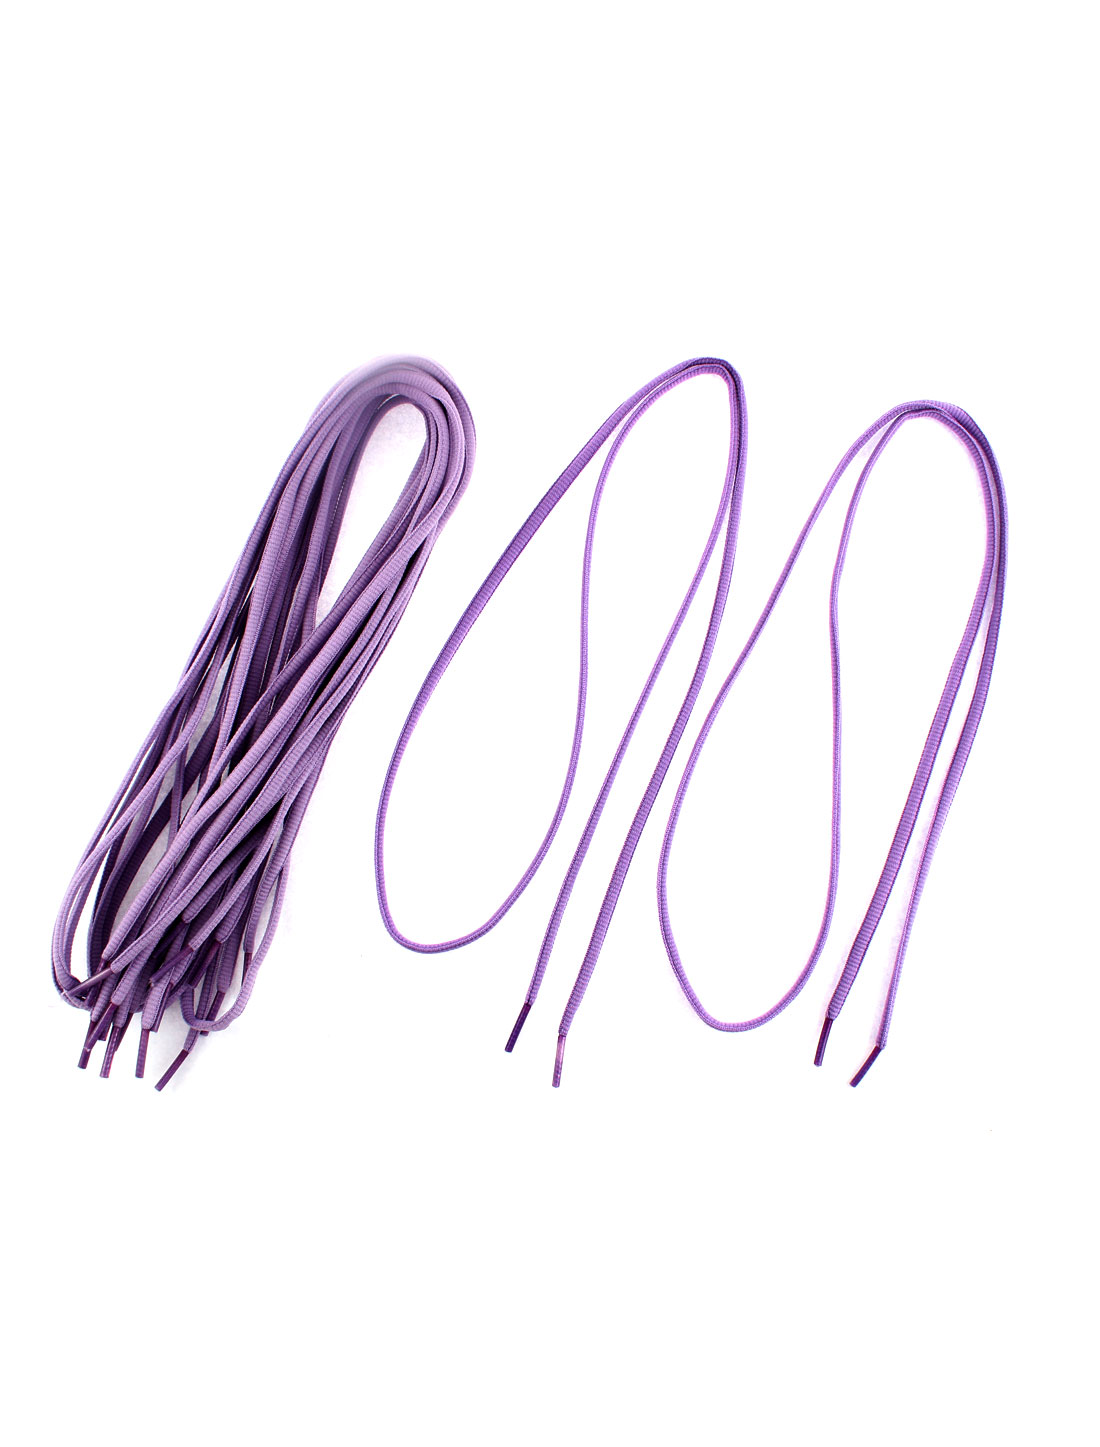 Sneakers Canvas Shoes Shoelaces String Light Purple 5 Pairs